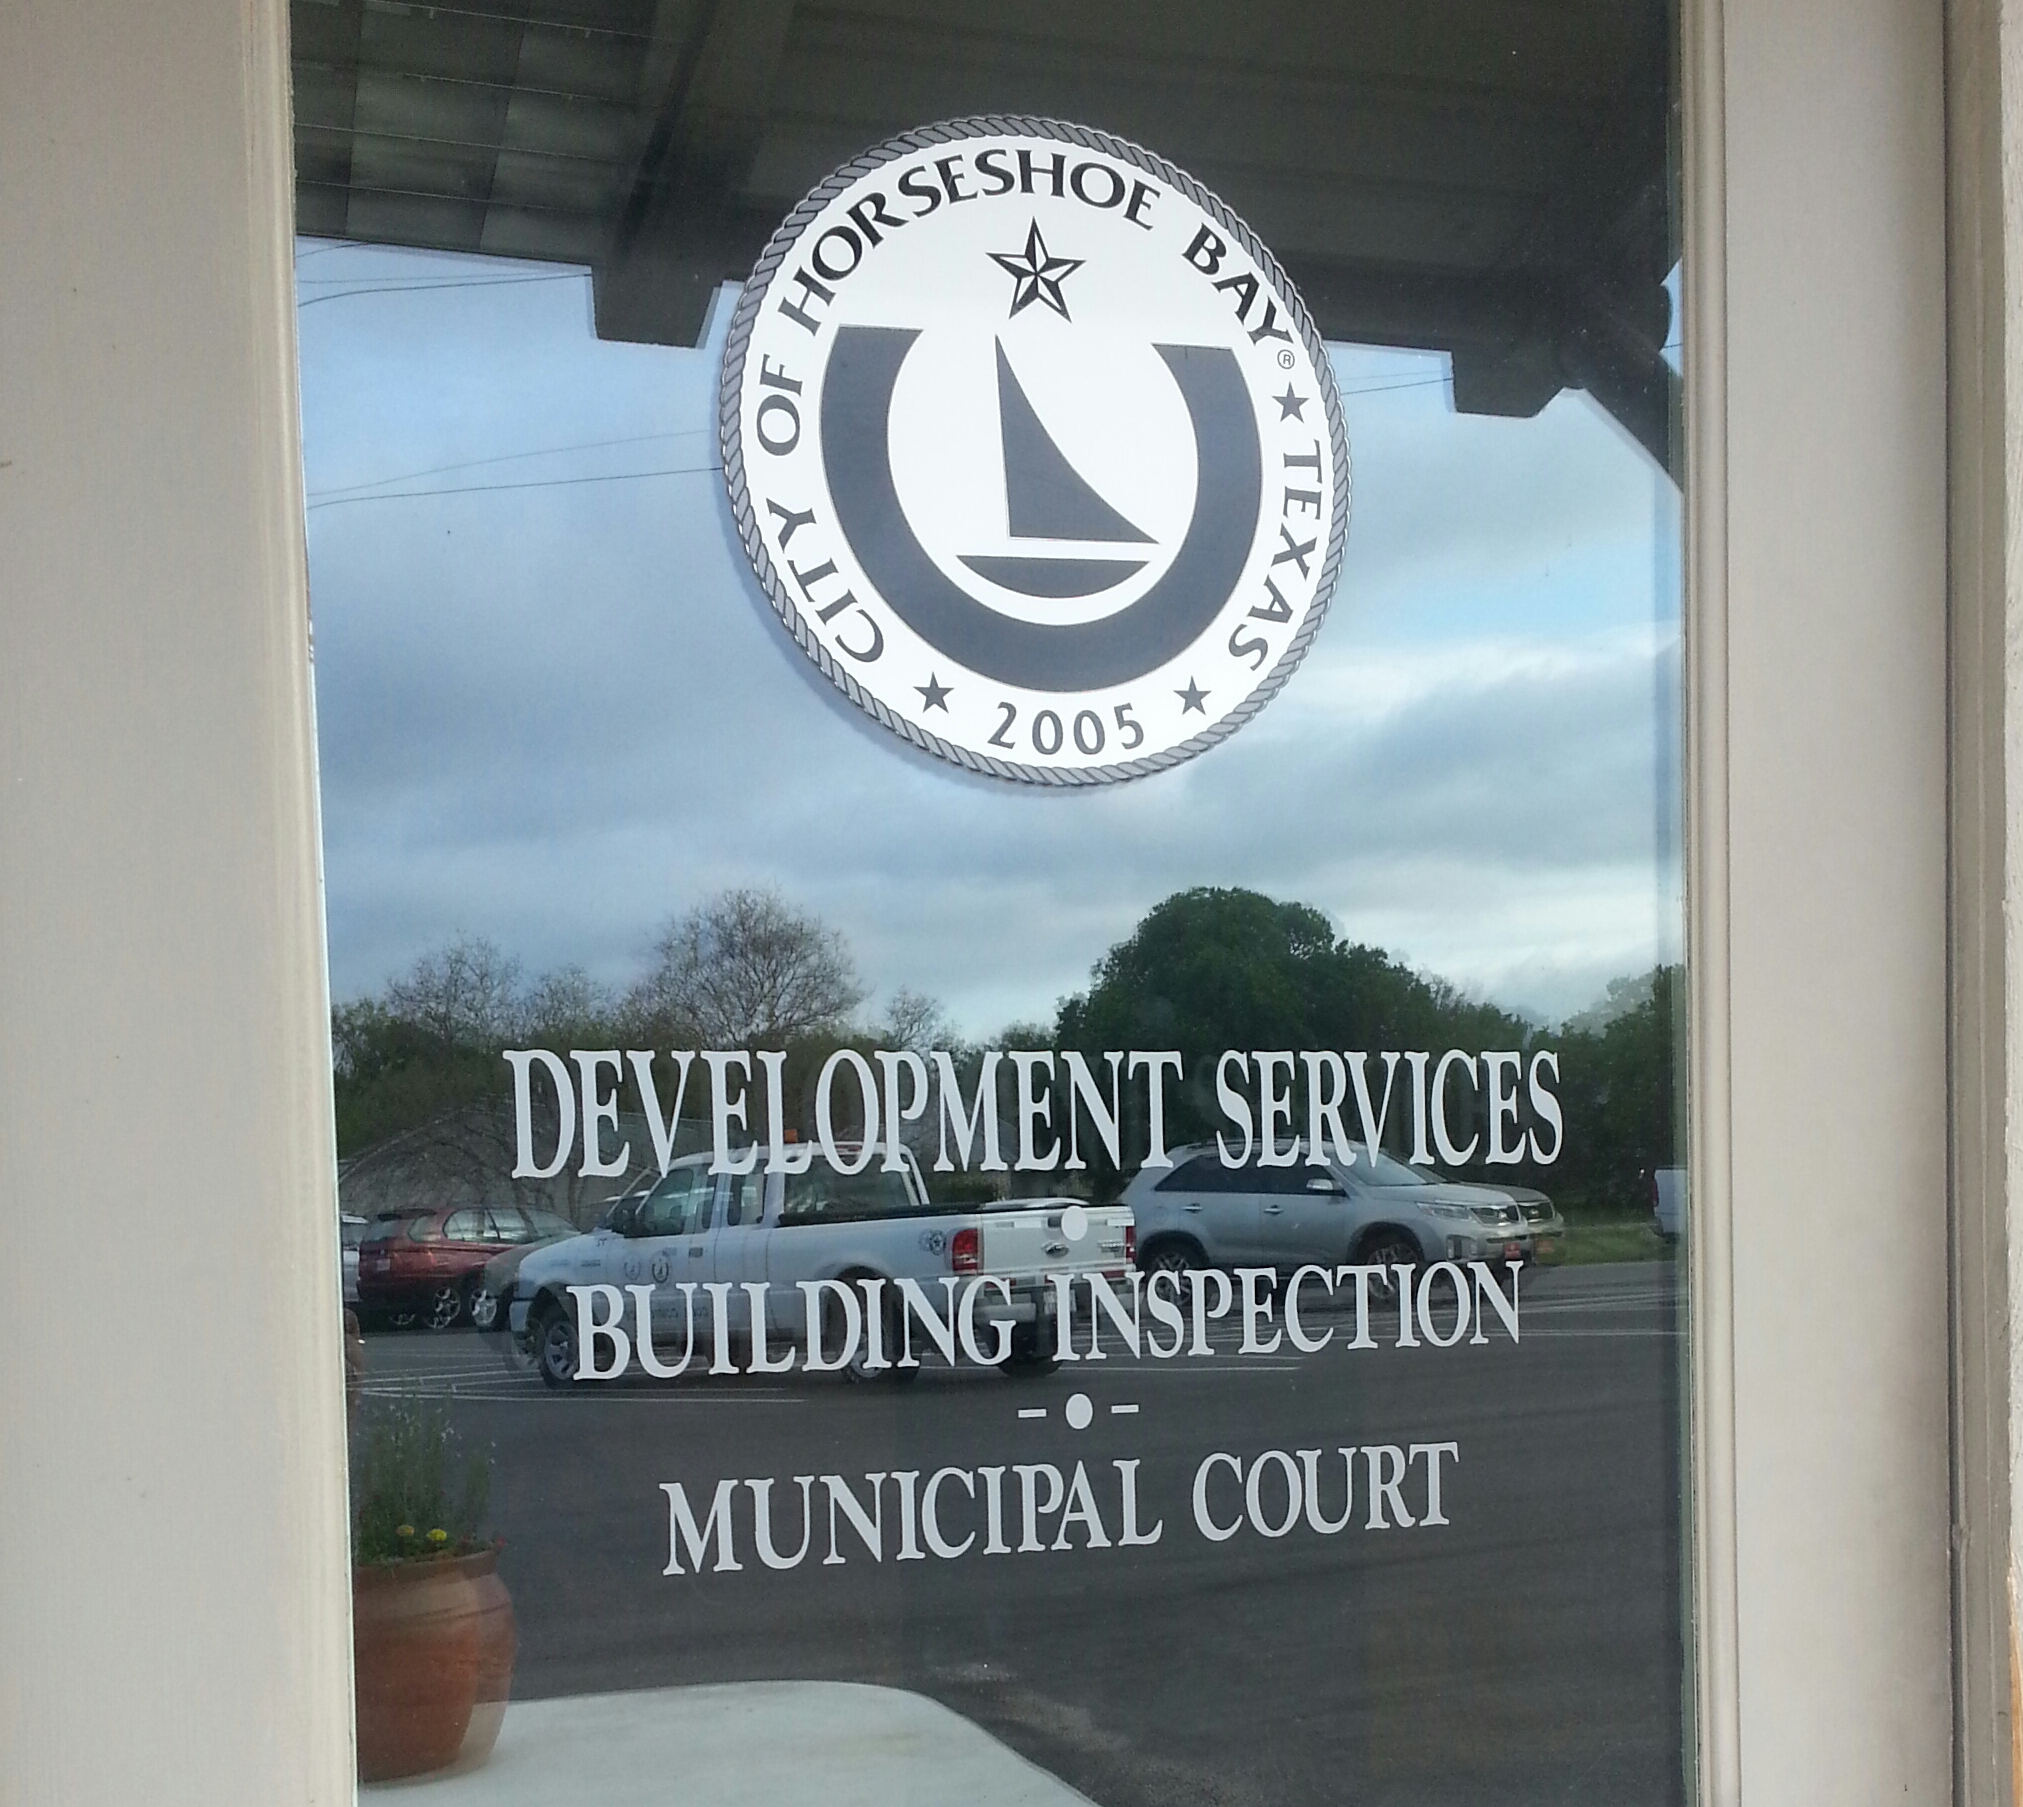 Picture of Development Services Dept door